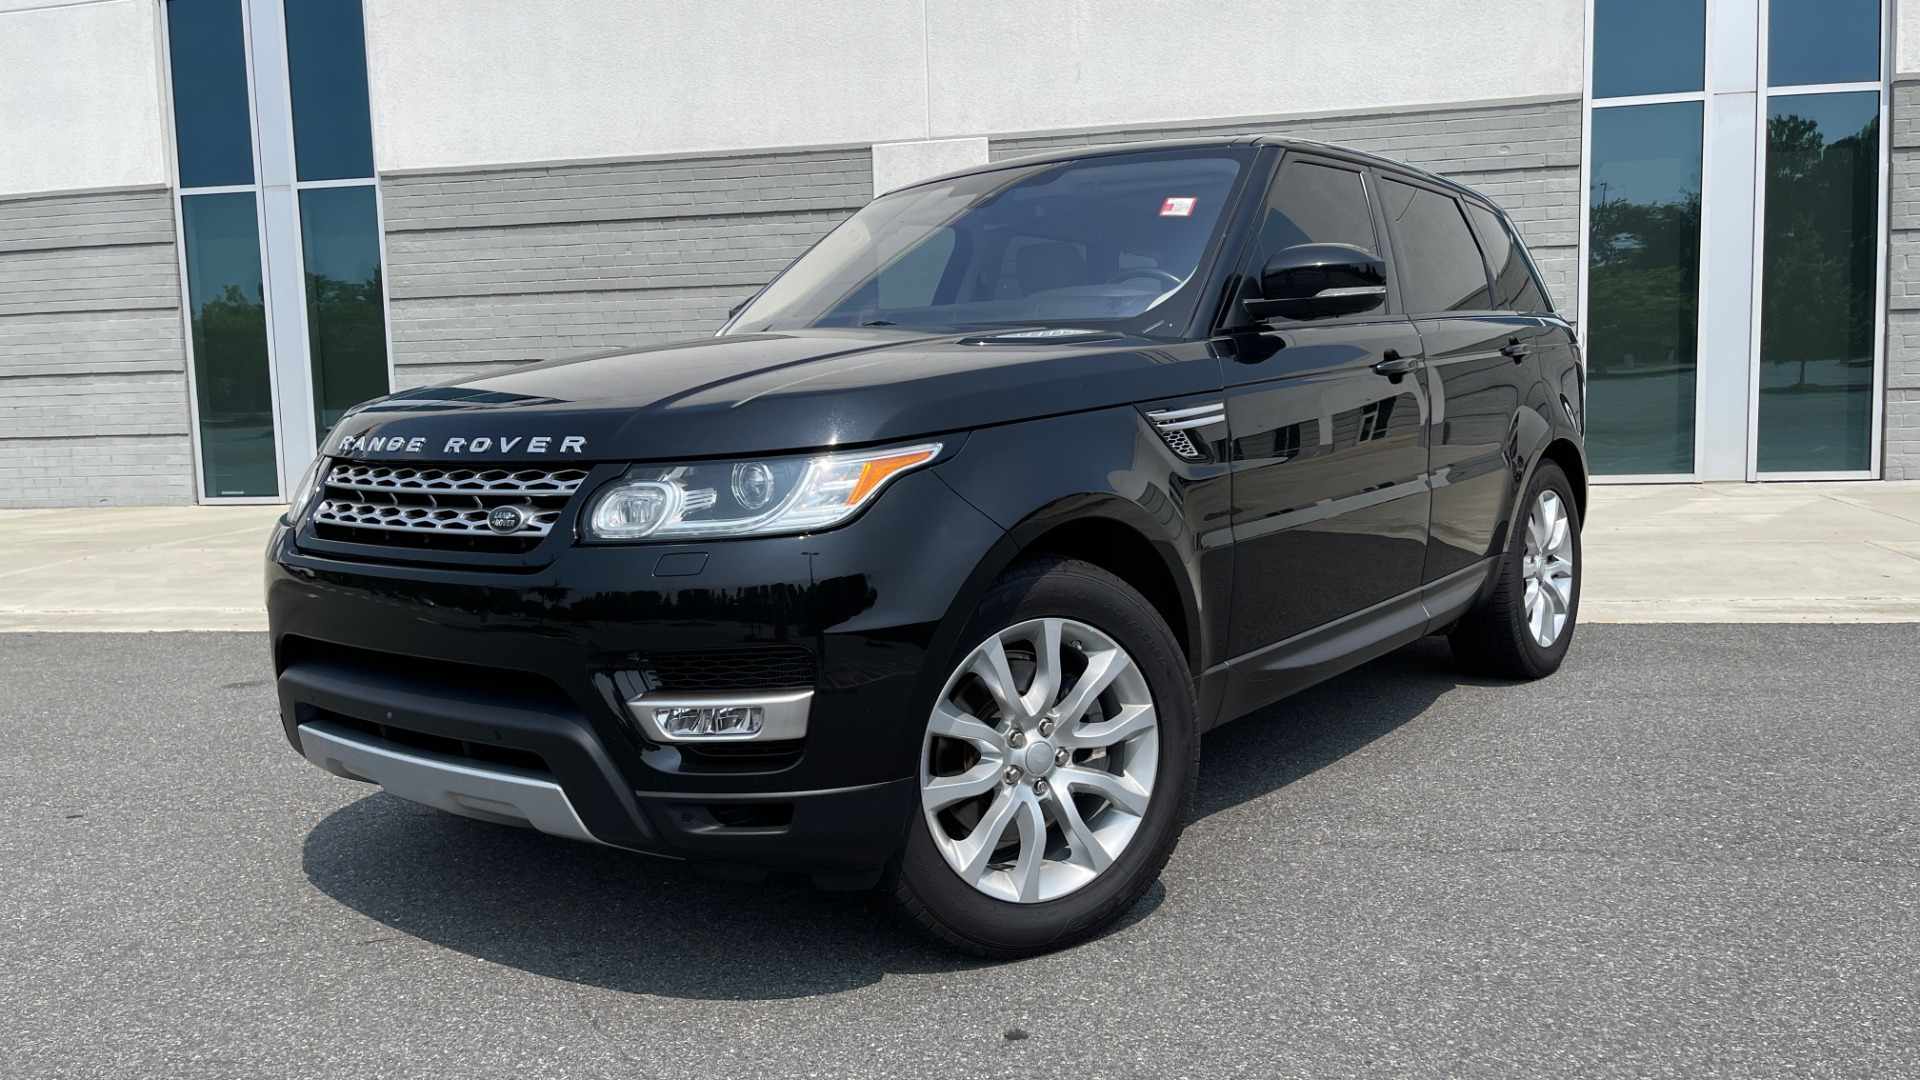 Used 2016 Land Rover RANGE ROVER SPORT V6 HSE / NAV / PANO-ROOF / MERIDIAN / CONSOLE COOLER / CAMERAS for sale $40,995 at Formula Imports in Charlotte NC 28227 1